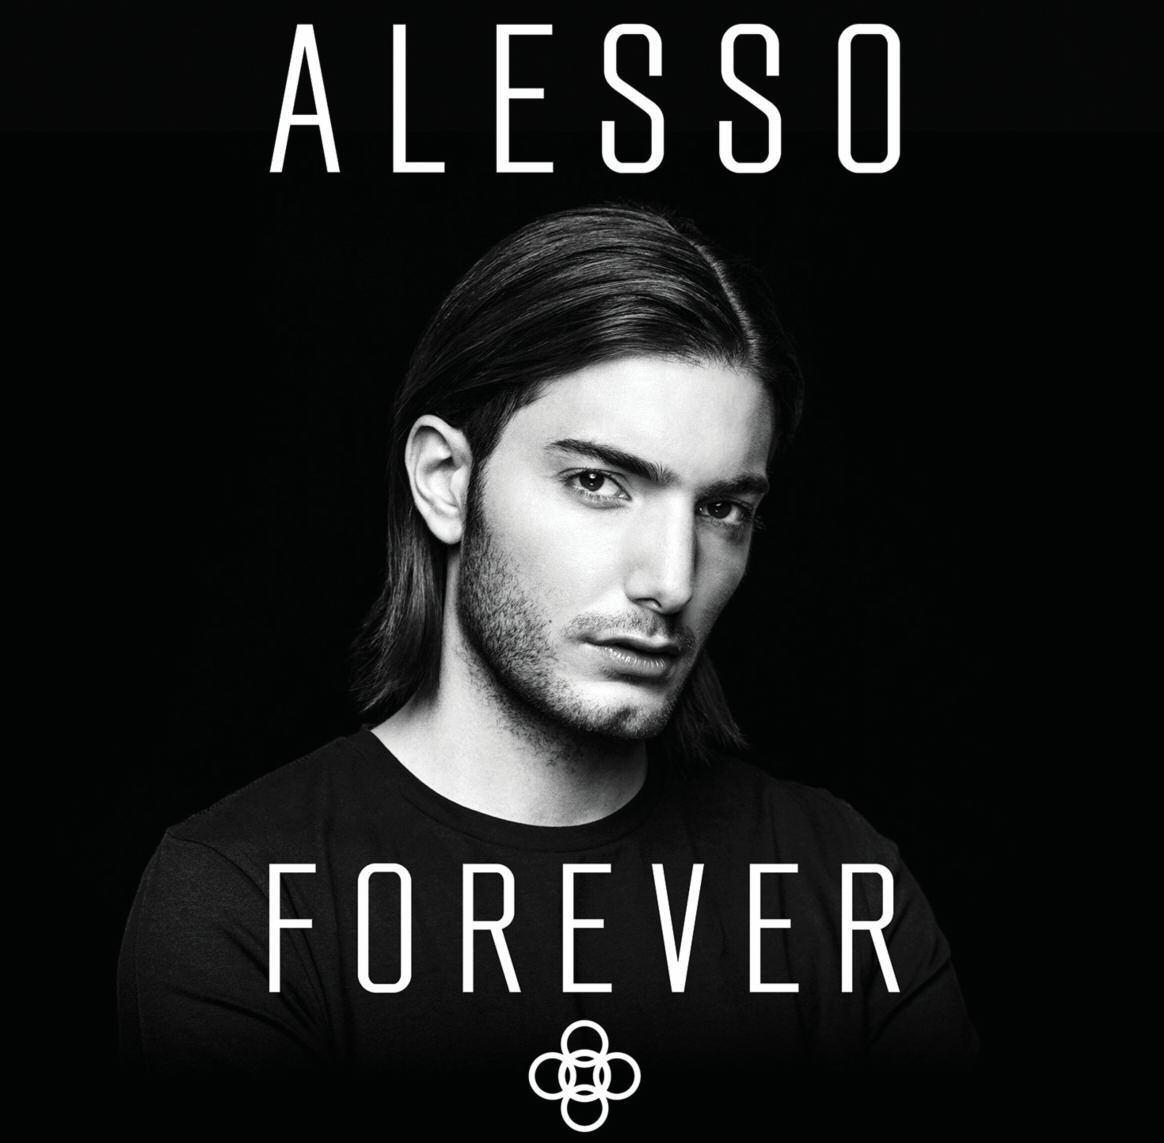 FOREVER - ALESSO - CD -